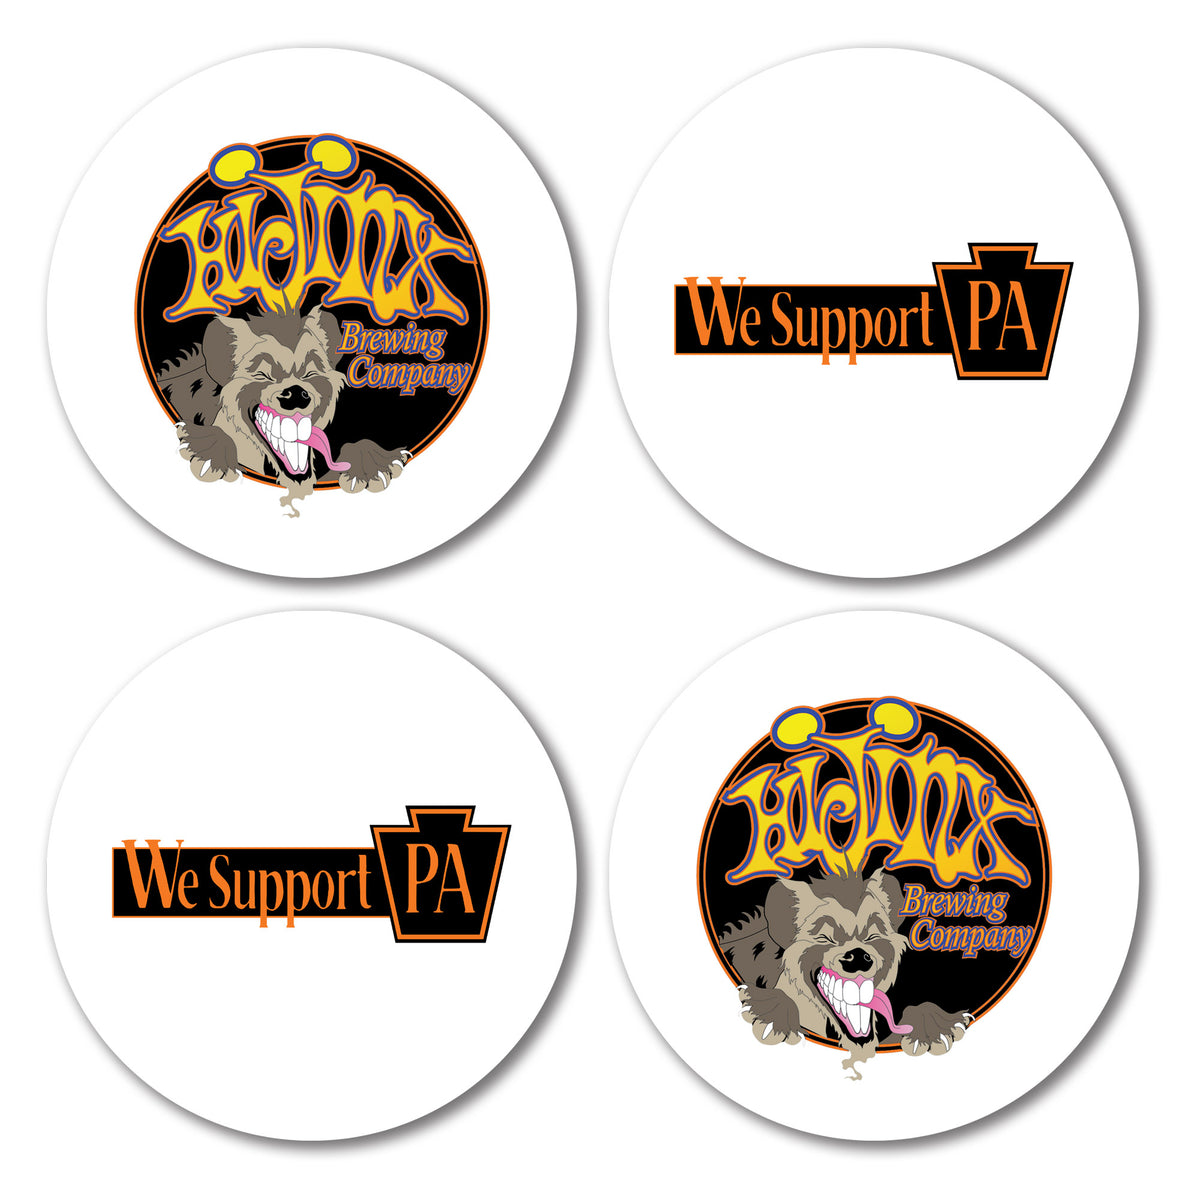 HiJinx Brewing Company We Support PA Coasters